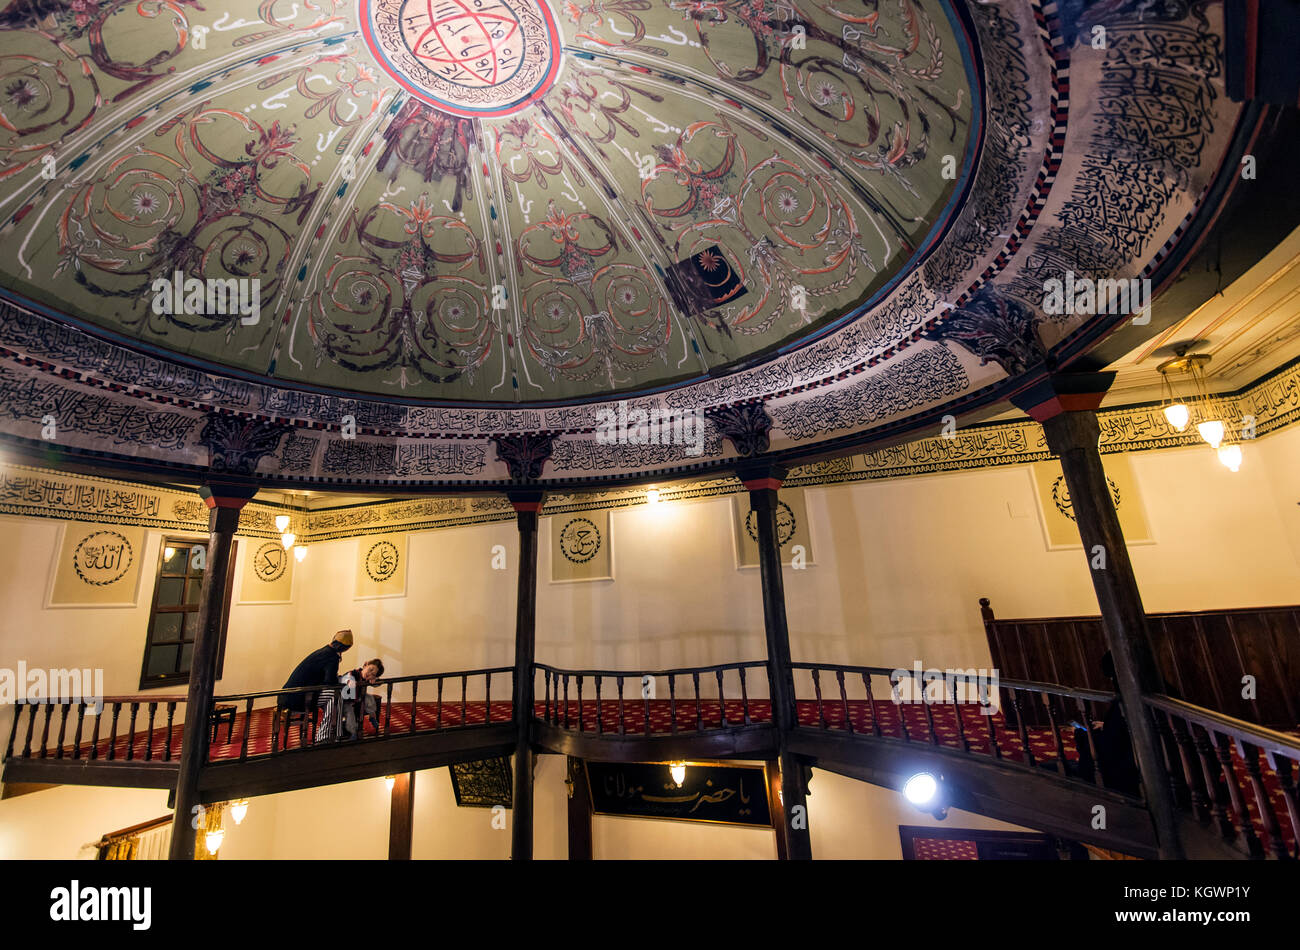 Whirling Dervishes at the Mevlevi in Bursa. - Stock Image